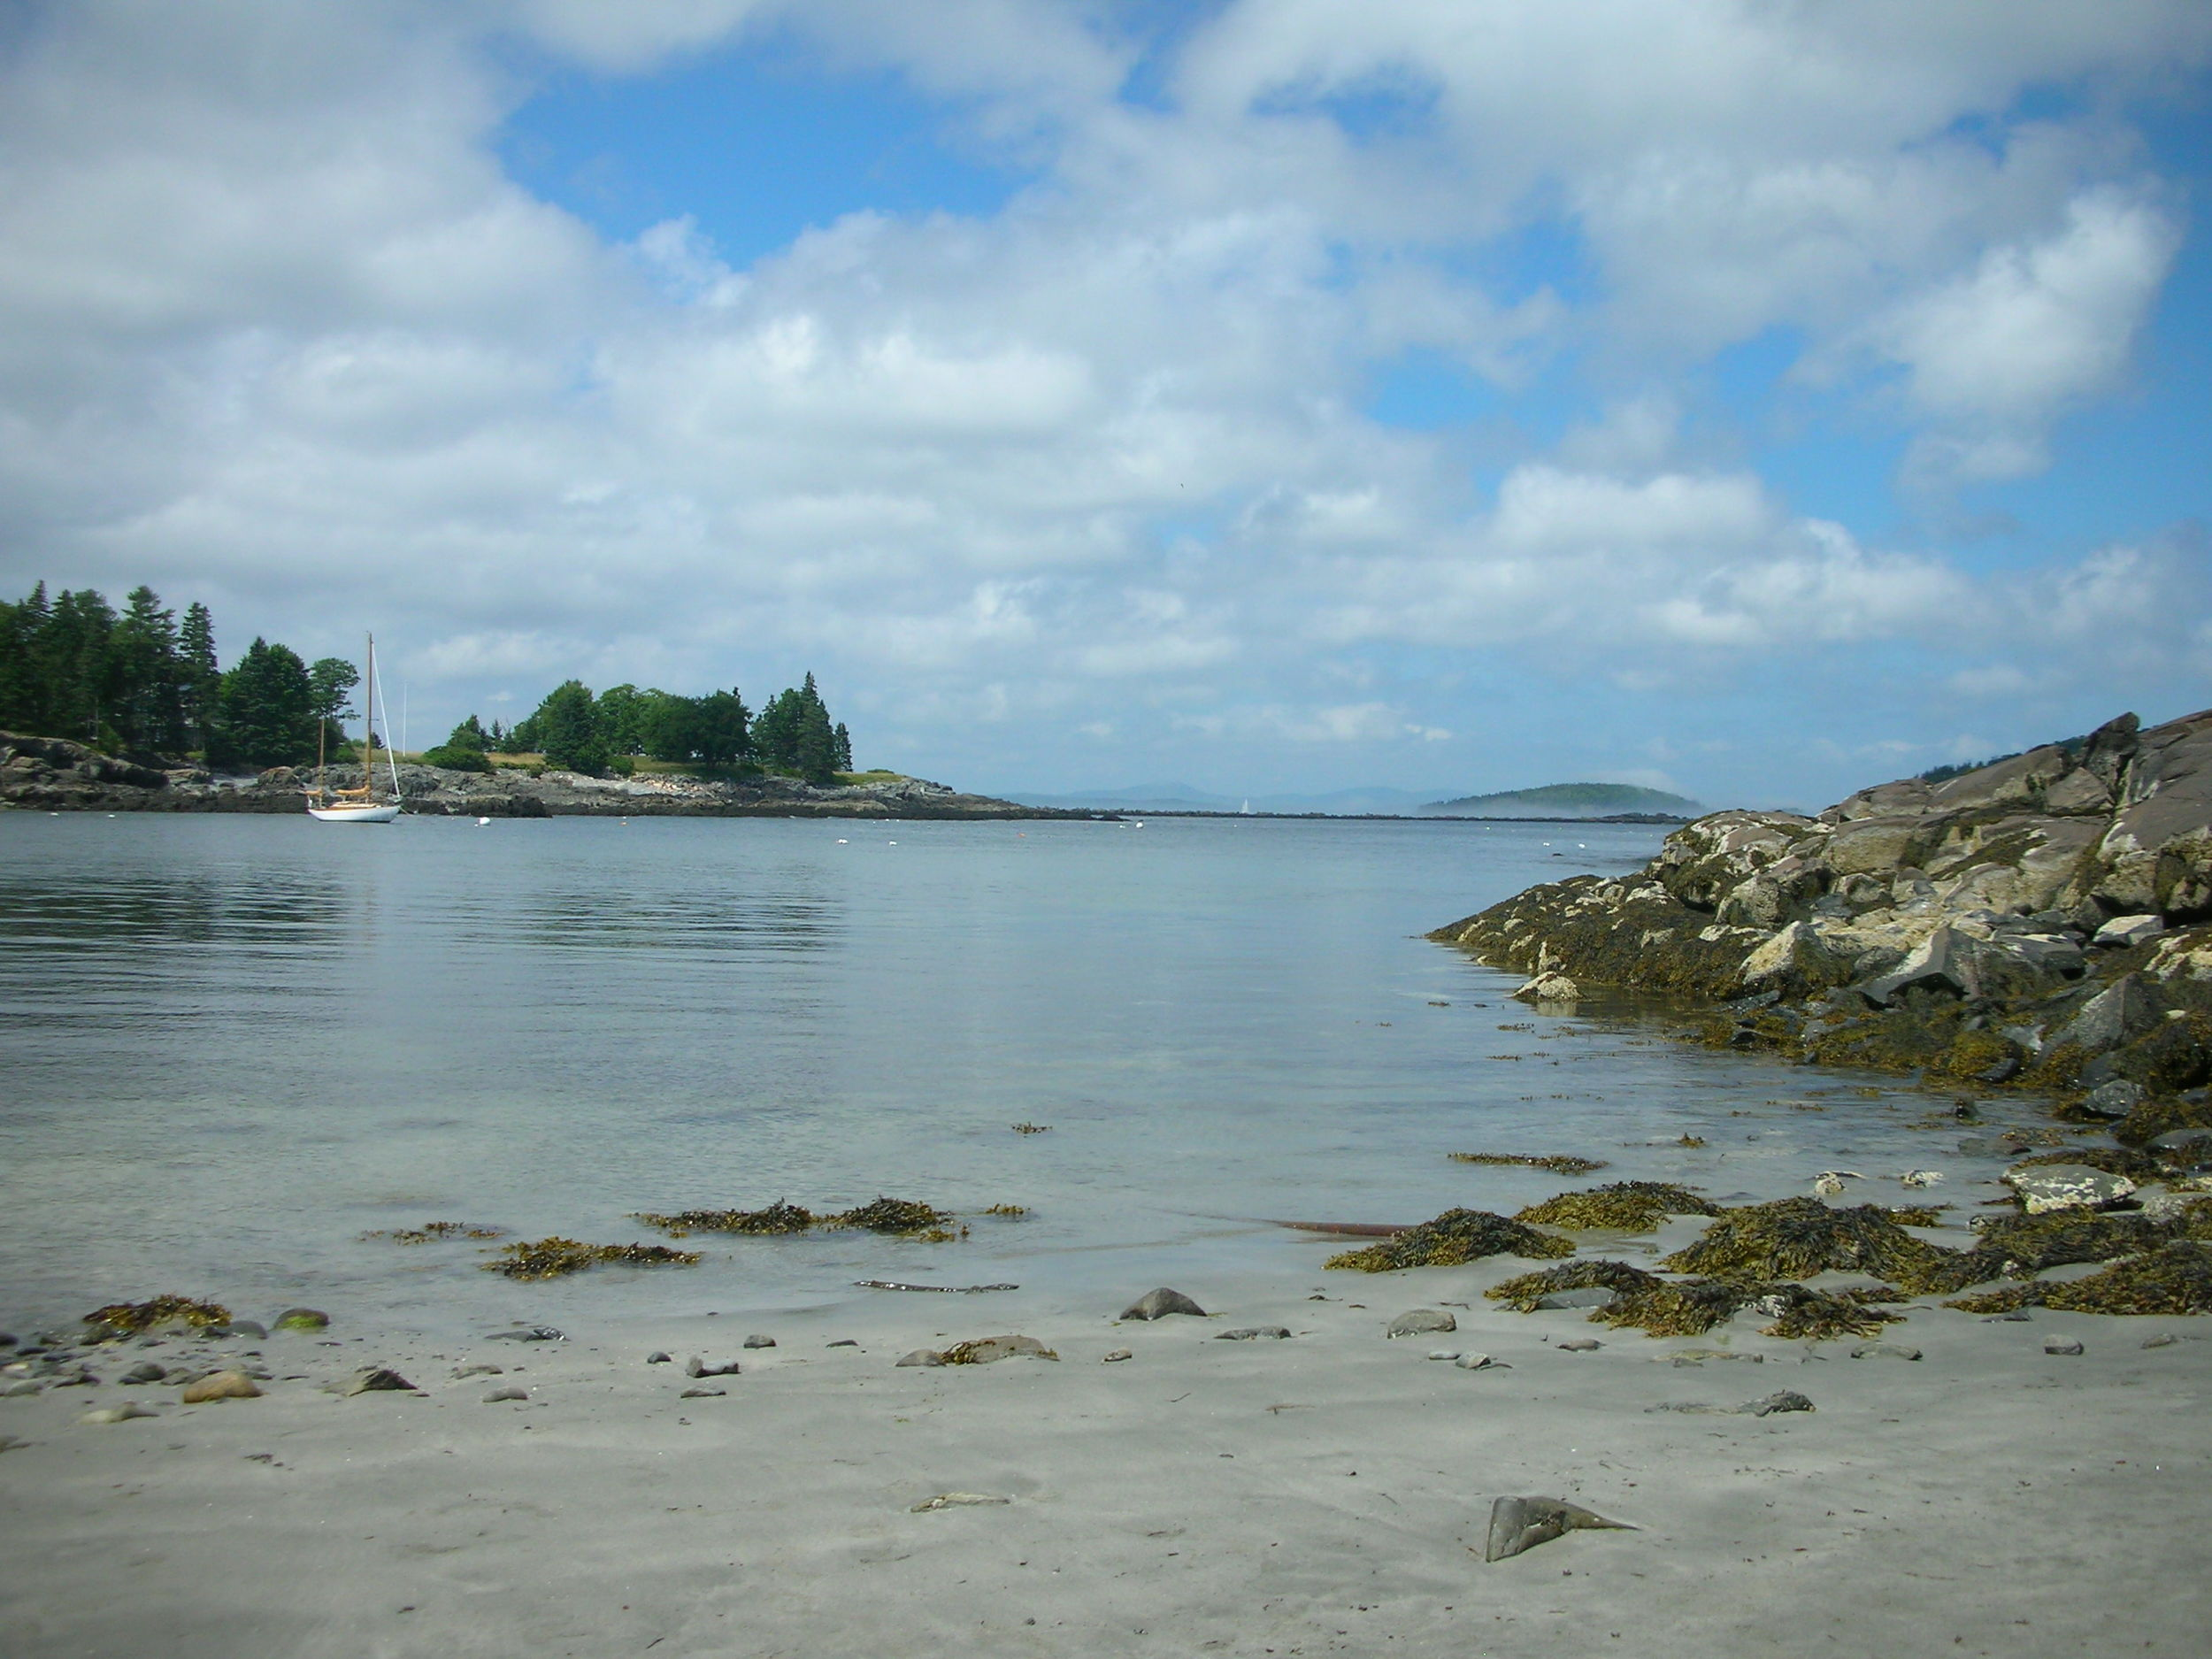 Compass Cove sand beach and calm waters are just a 5 minute walk from the house.